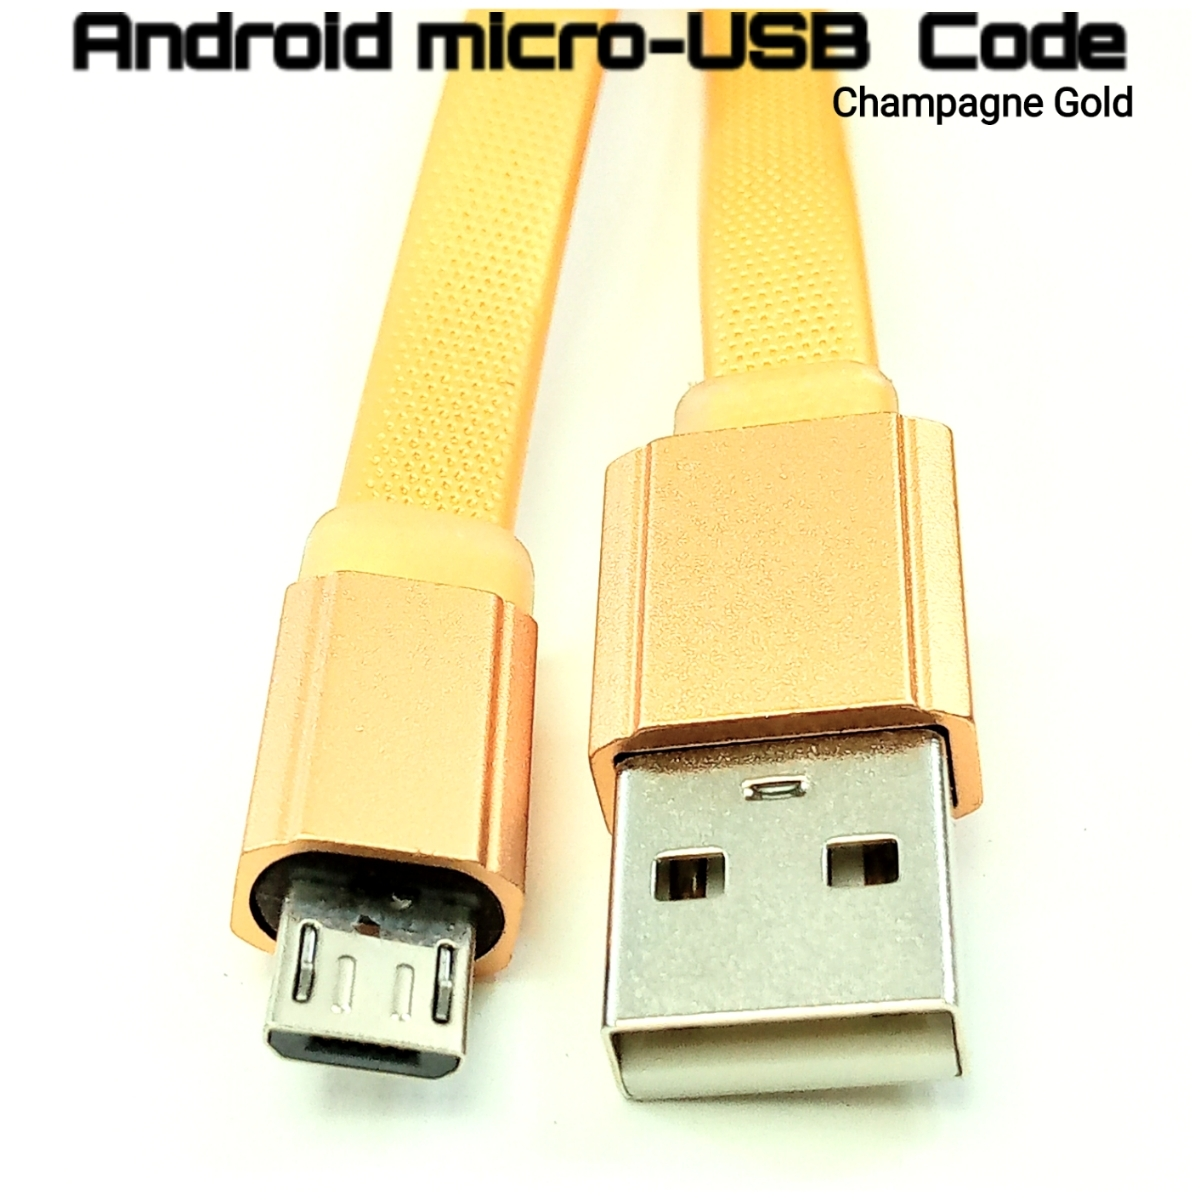 Android microUSB gold充電平コード【新品】_画像1